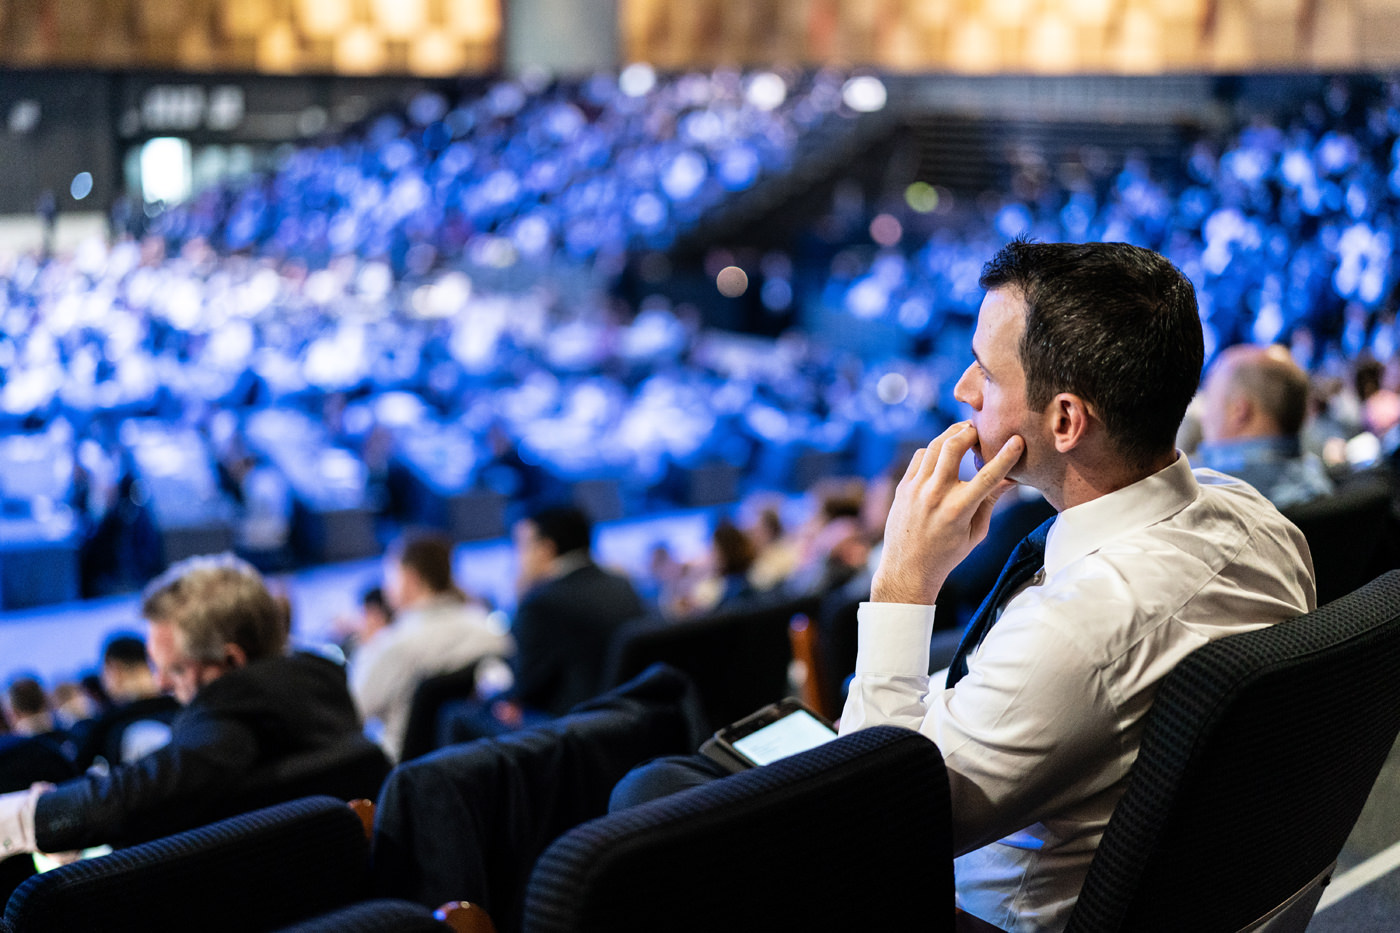 A delegate listens at the CFA Annual Conference at the ICC Auditorium ExCel London